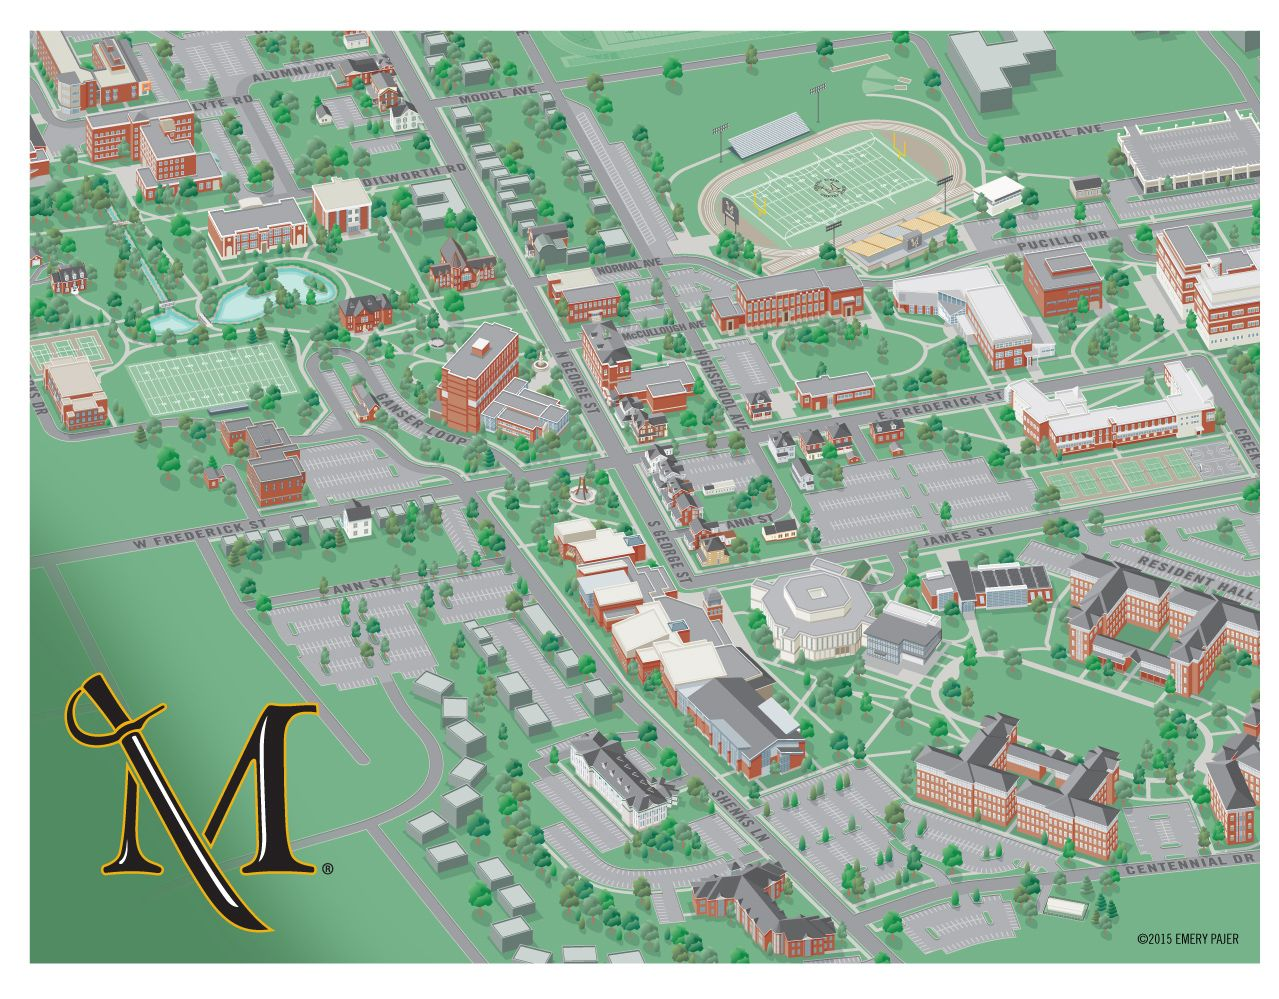 Millersville University Map college campus map illustration Millersville University | 3D